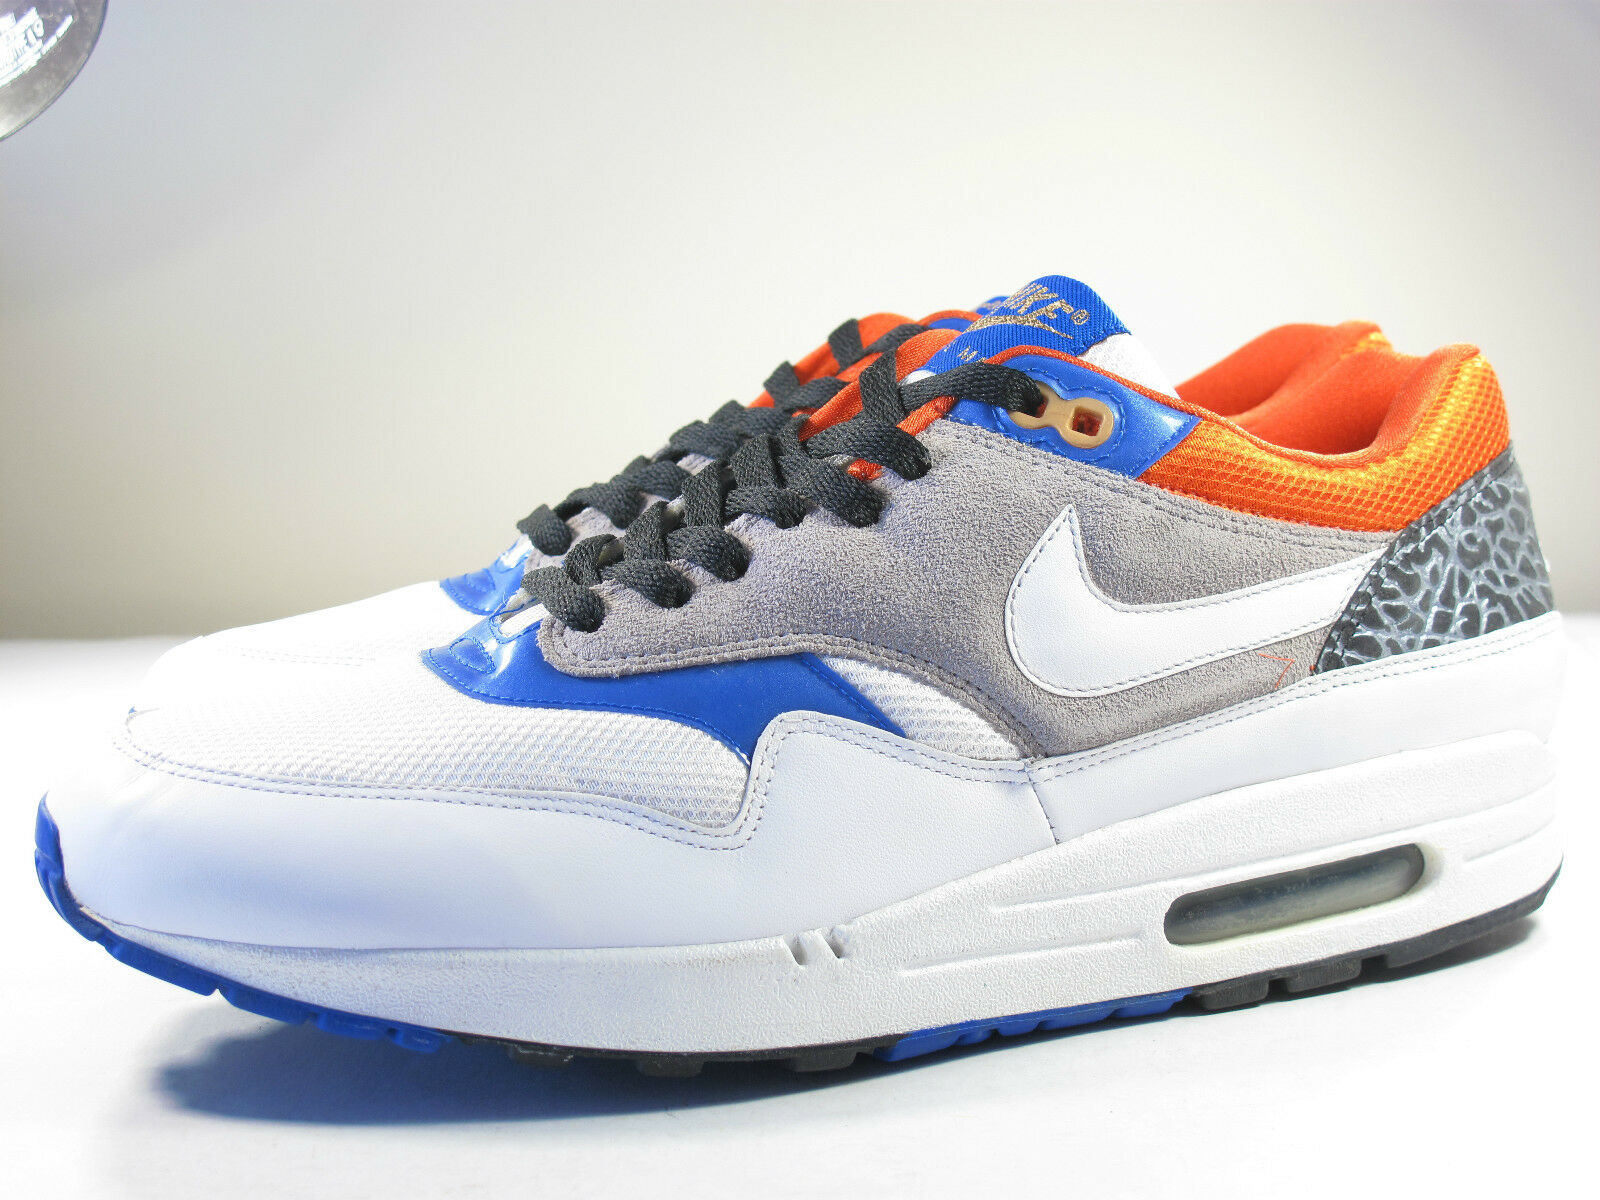 DS NIKE 2007 AIR MAX 1 COLLEGE ORANGE 10.5 SAFARI LEOPARD 90 95 97 180 plus 93